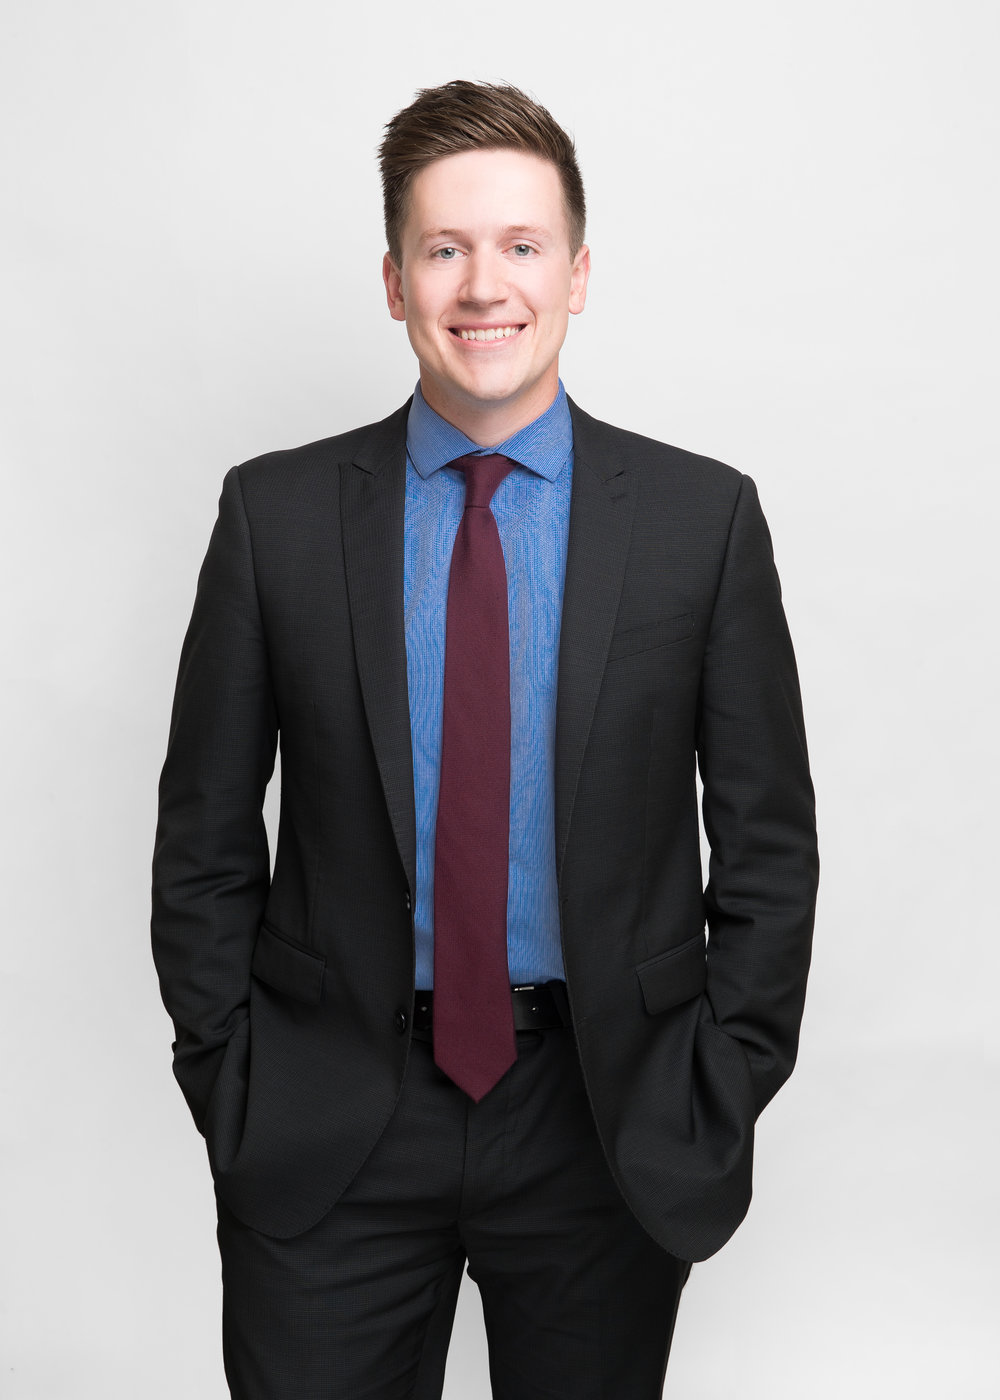 - Birdsell Grant LLP is excited to announce that Darren Bolle has joined the firm on June 18, 2018. We had the opportunity to work with Darren in 2016 while he was a summer student at our firm, and we are pleased to have him back as an Articling Student.More information about Darren can be found in his bio.